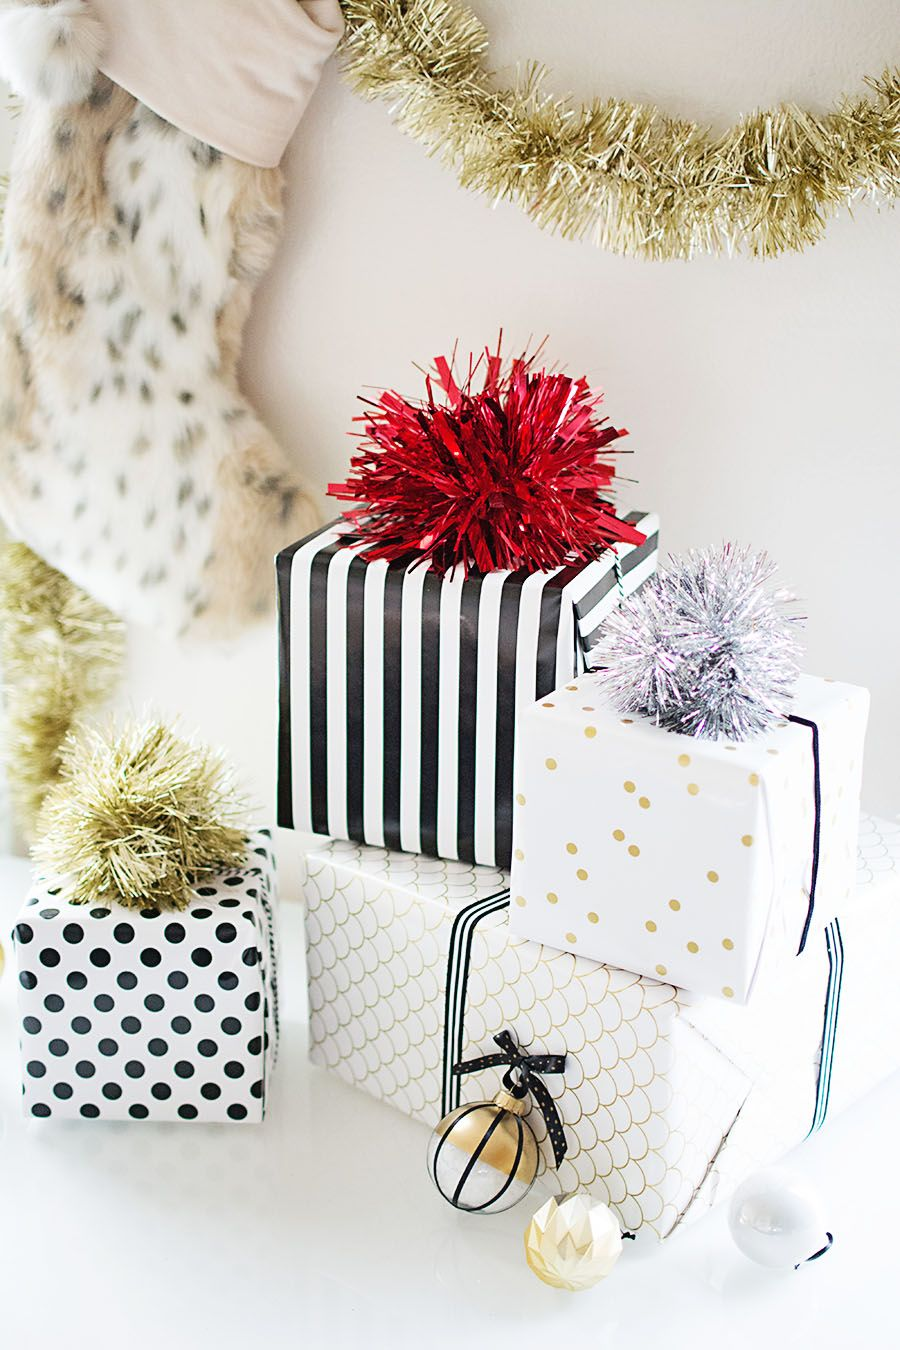 DIY Tinsel Pom Pom Gift Topper | DIY Projects | Gifts, Christmas ...